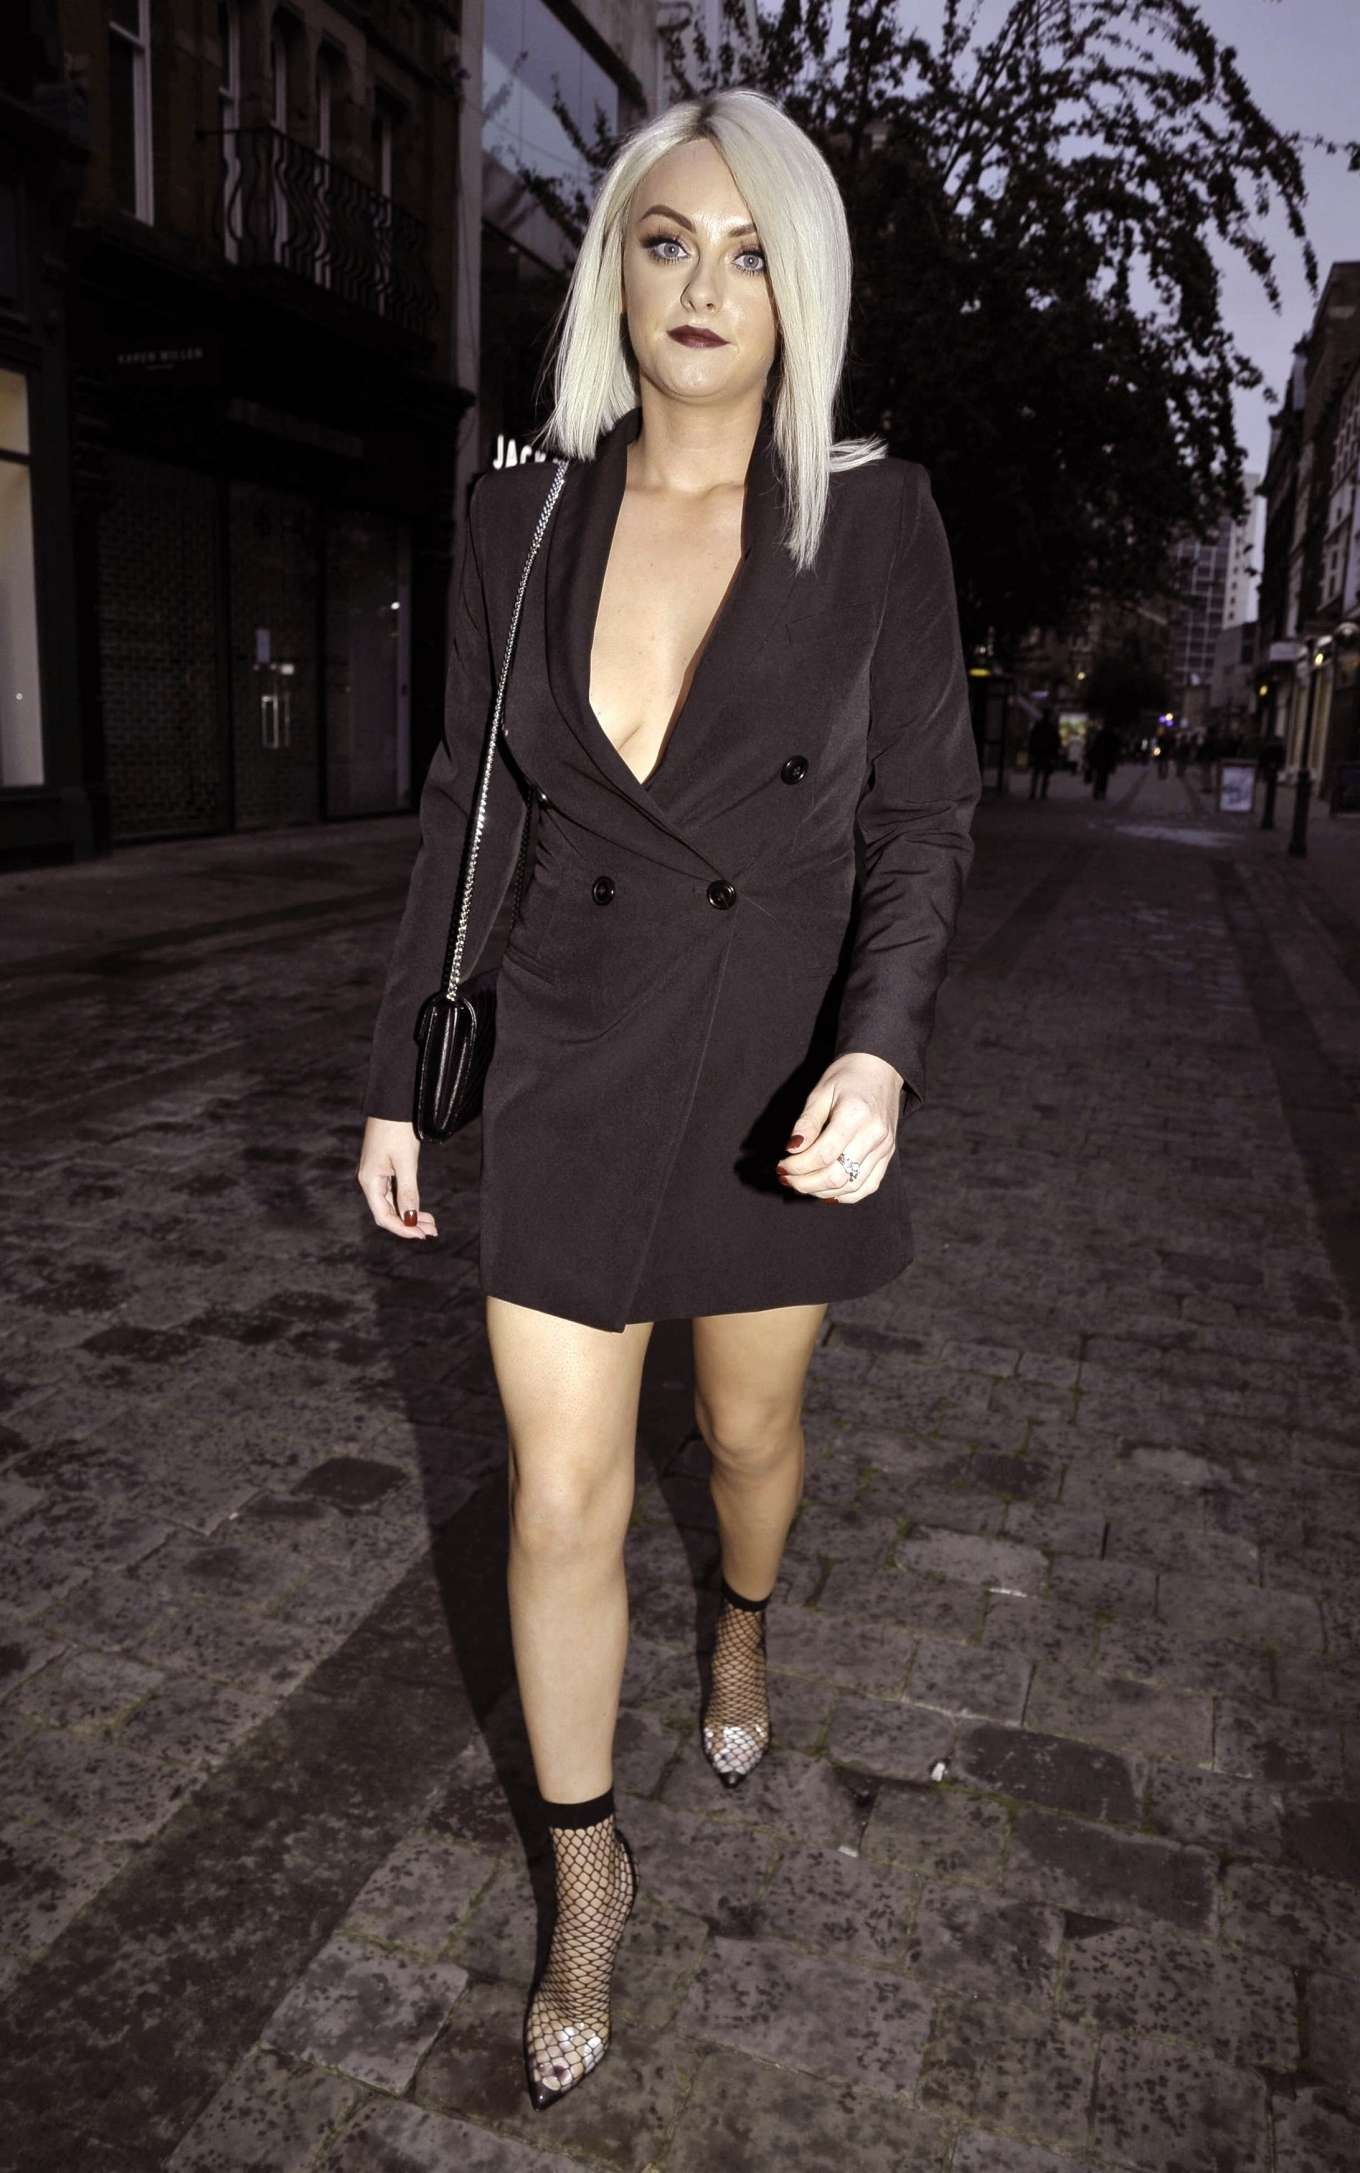 Katie McGlynn - Attends the VIP House of Klarna pop up store on King Street in Manchester